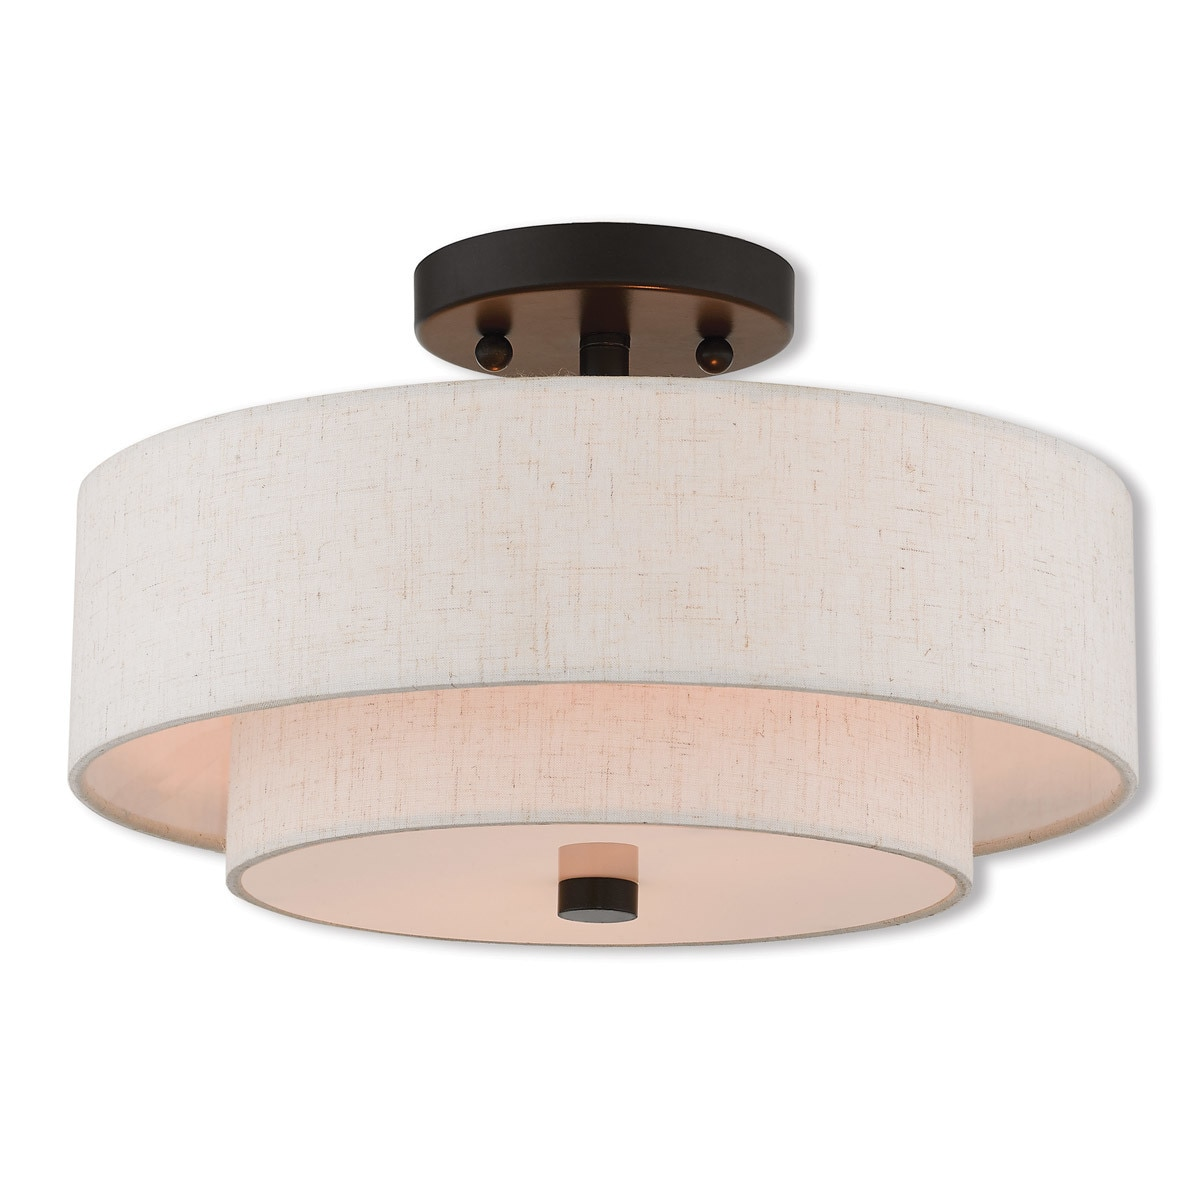 Shop livex lighting claremont bronze finished steel 2 light indoor flush mount light fixture with brown fabric shades free shipping today overstock